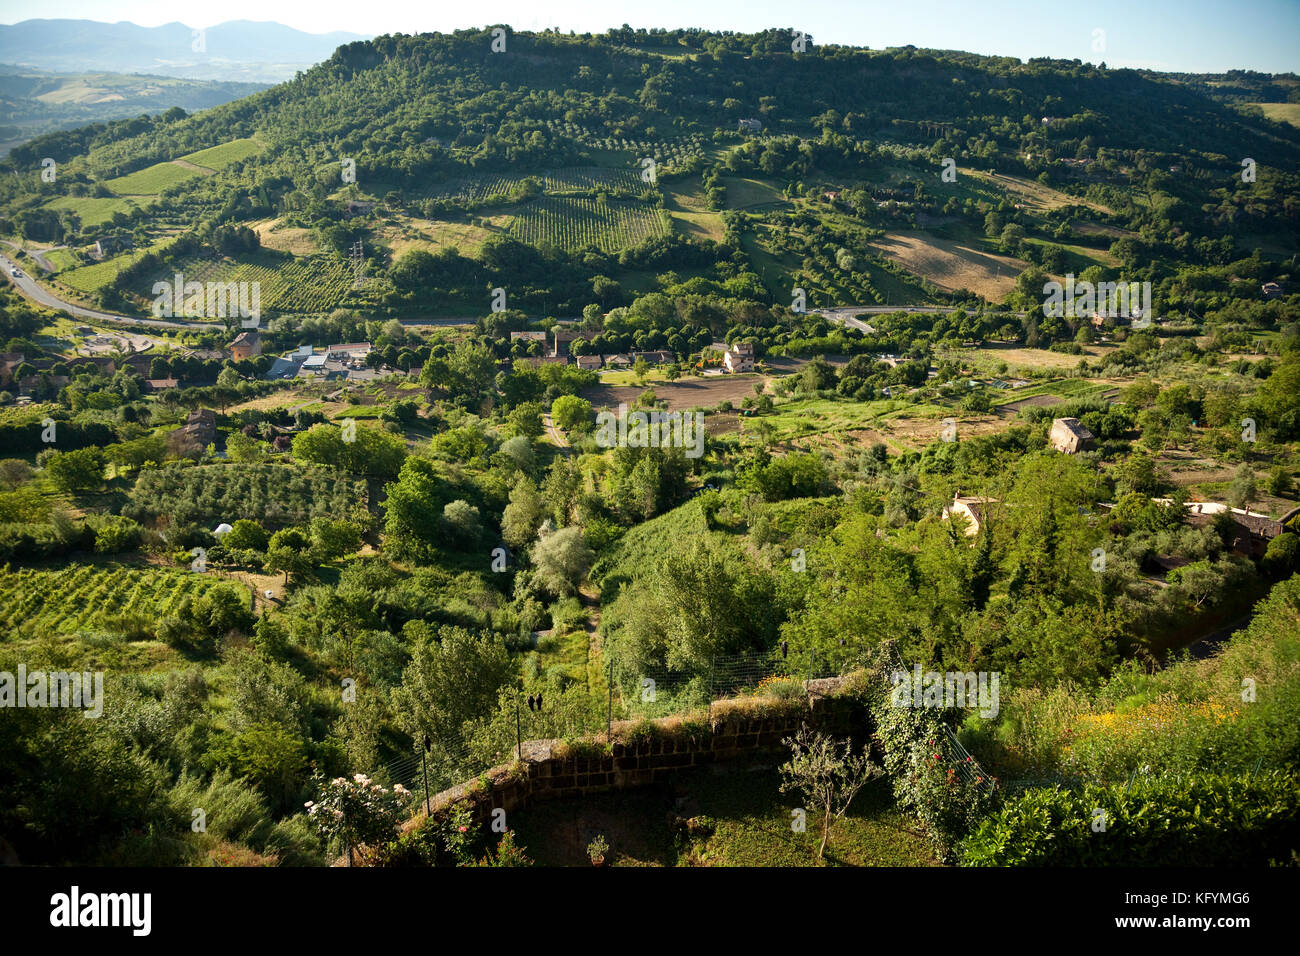 View of the green hills looking south from Orvieto, Italy. - Stock Image